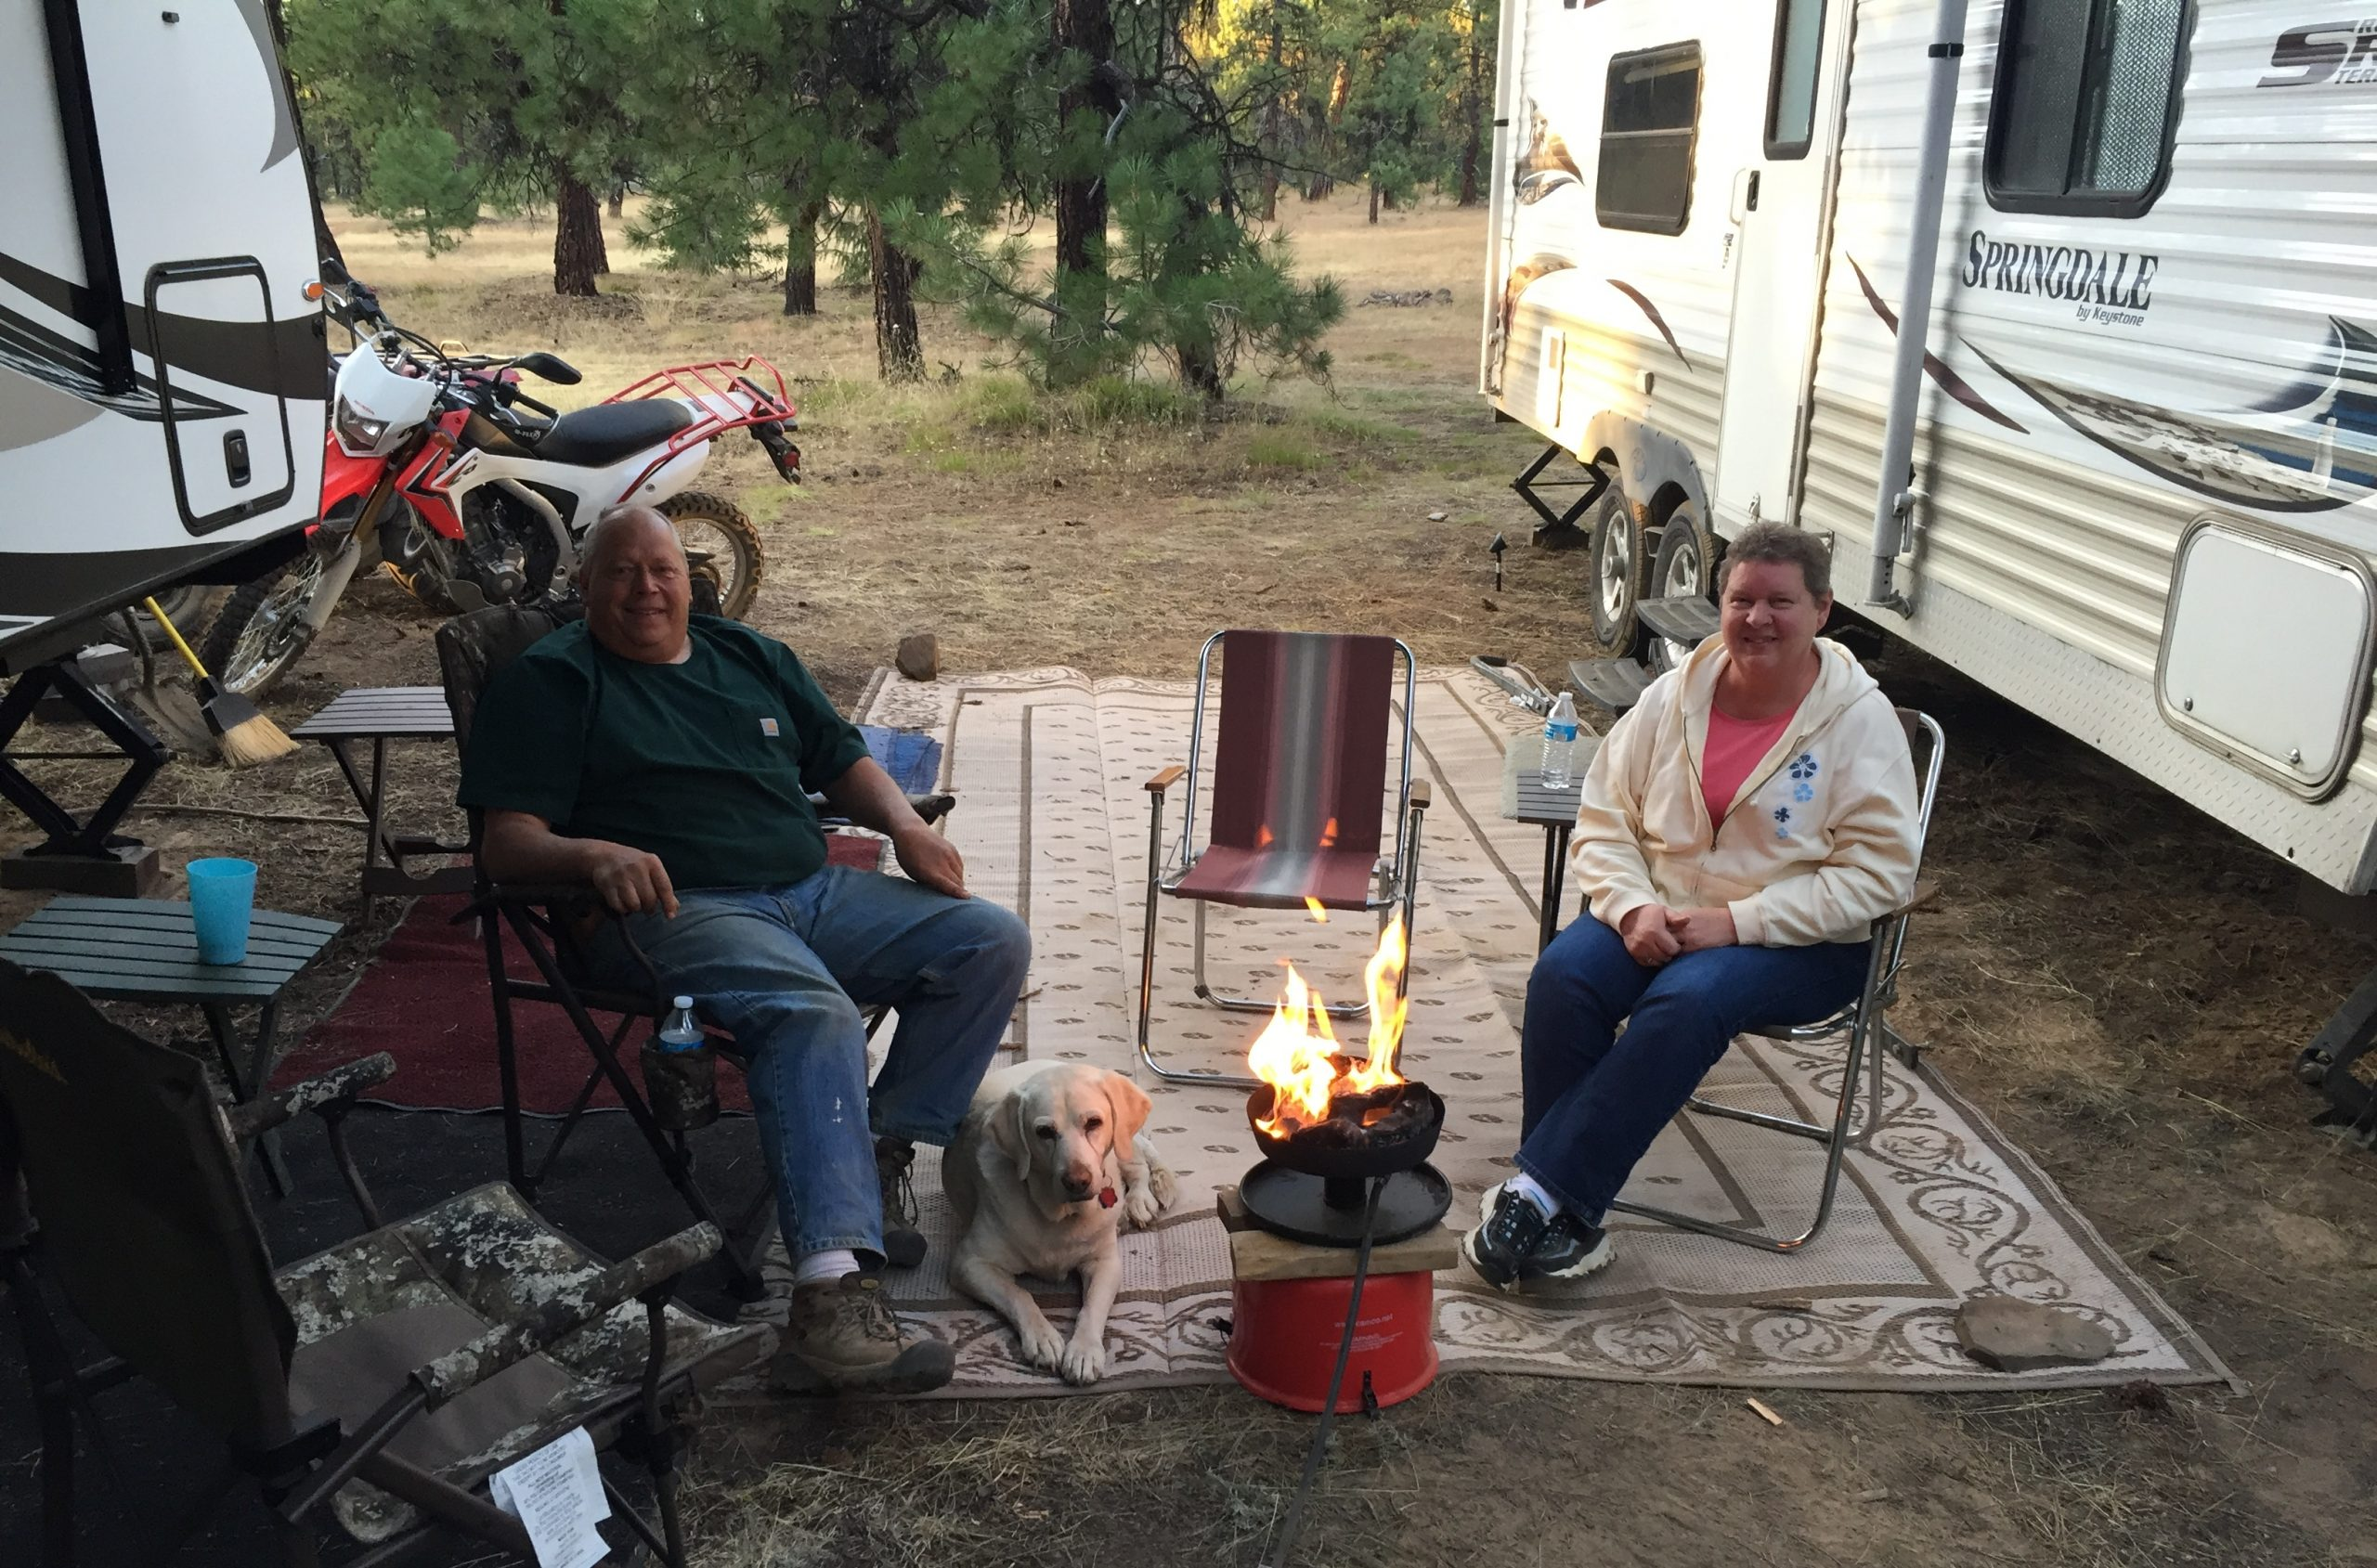 People sitting next to portable fire pit